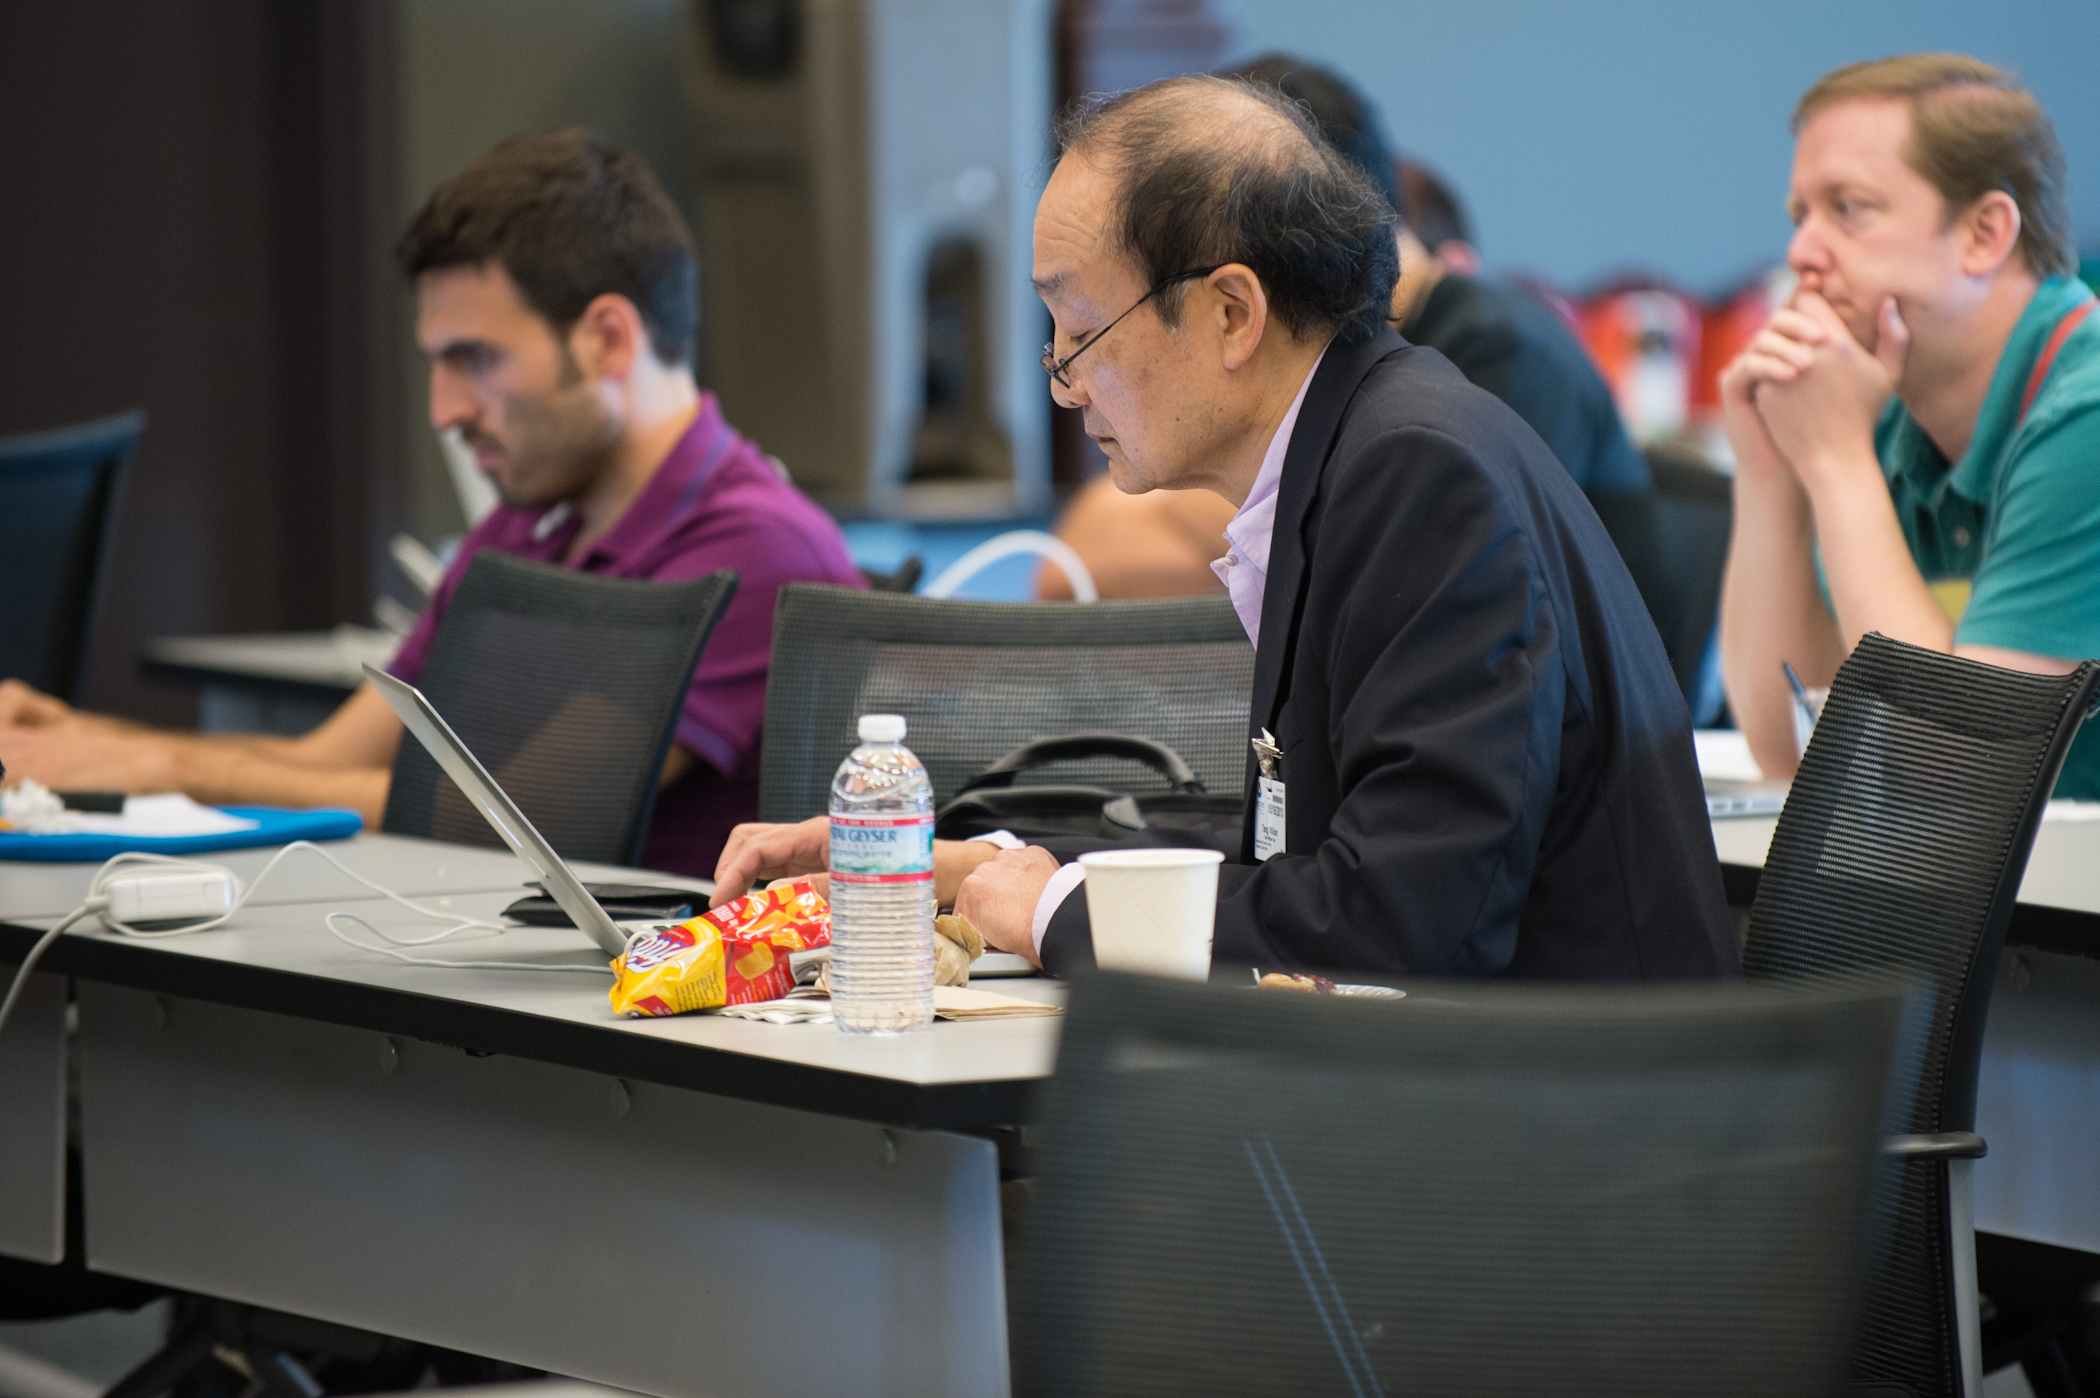 Researchers at the ESP meeting